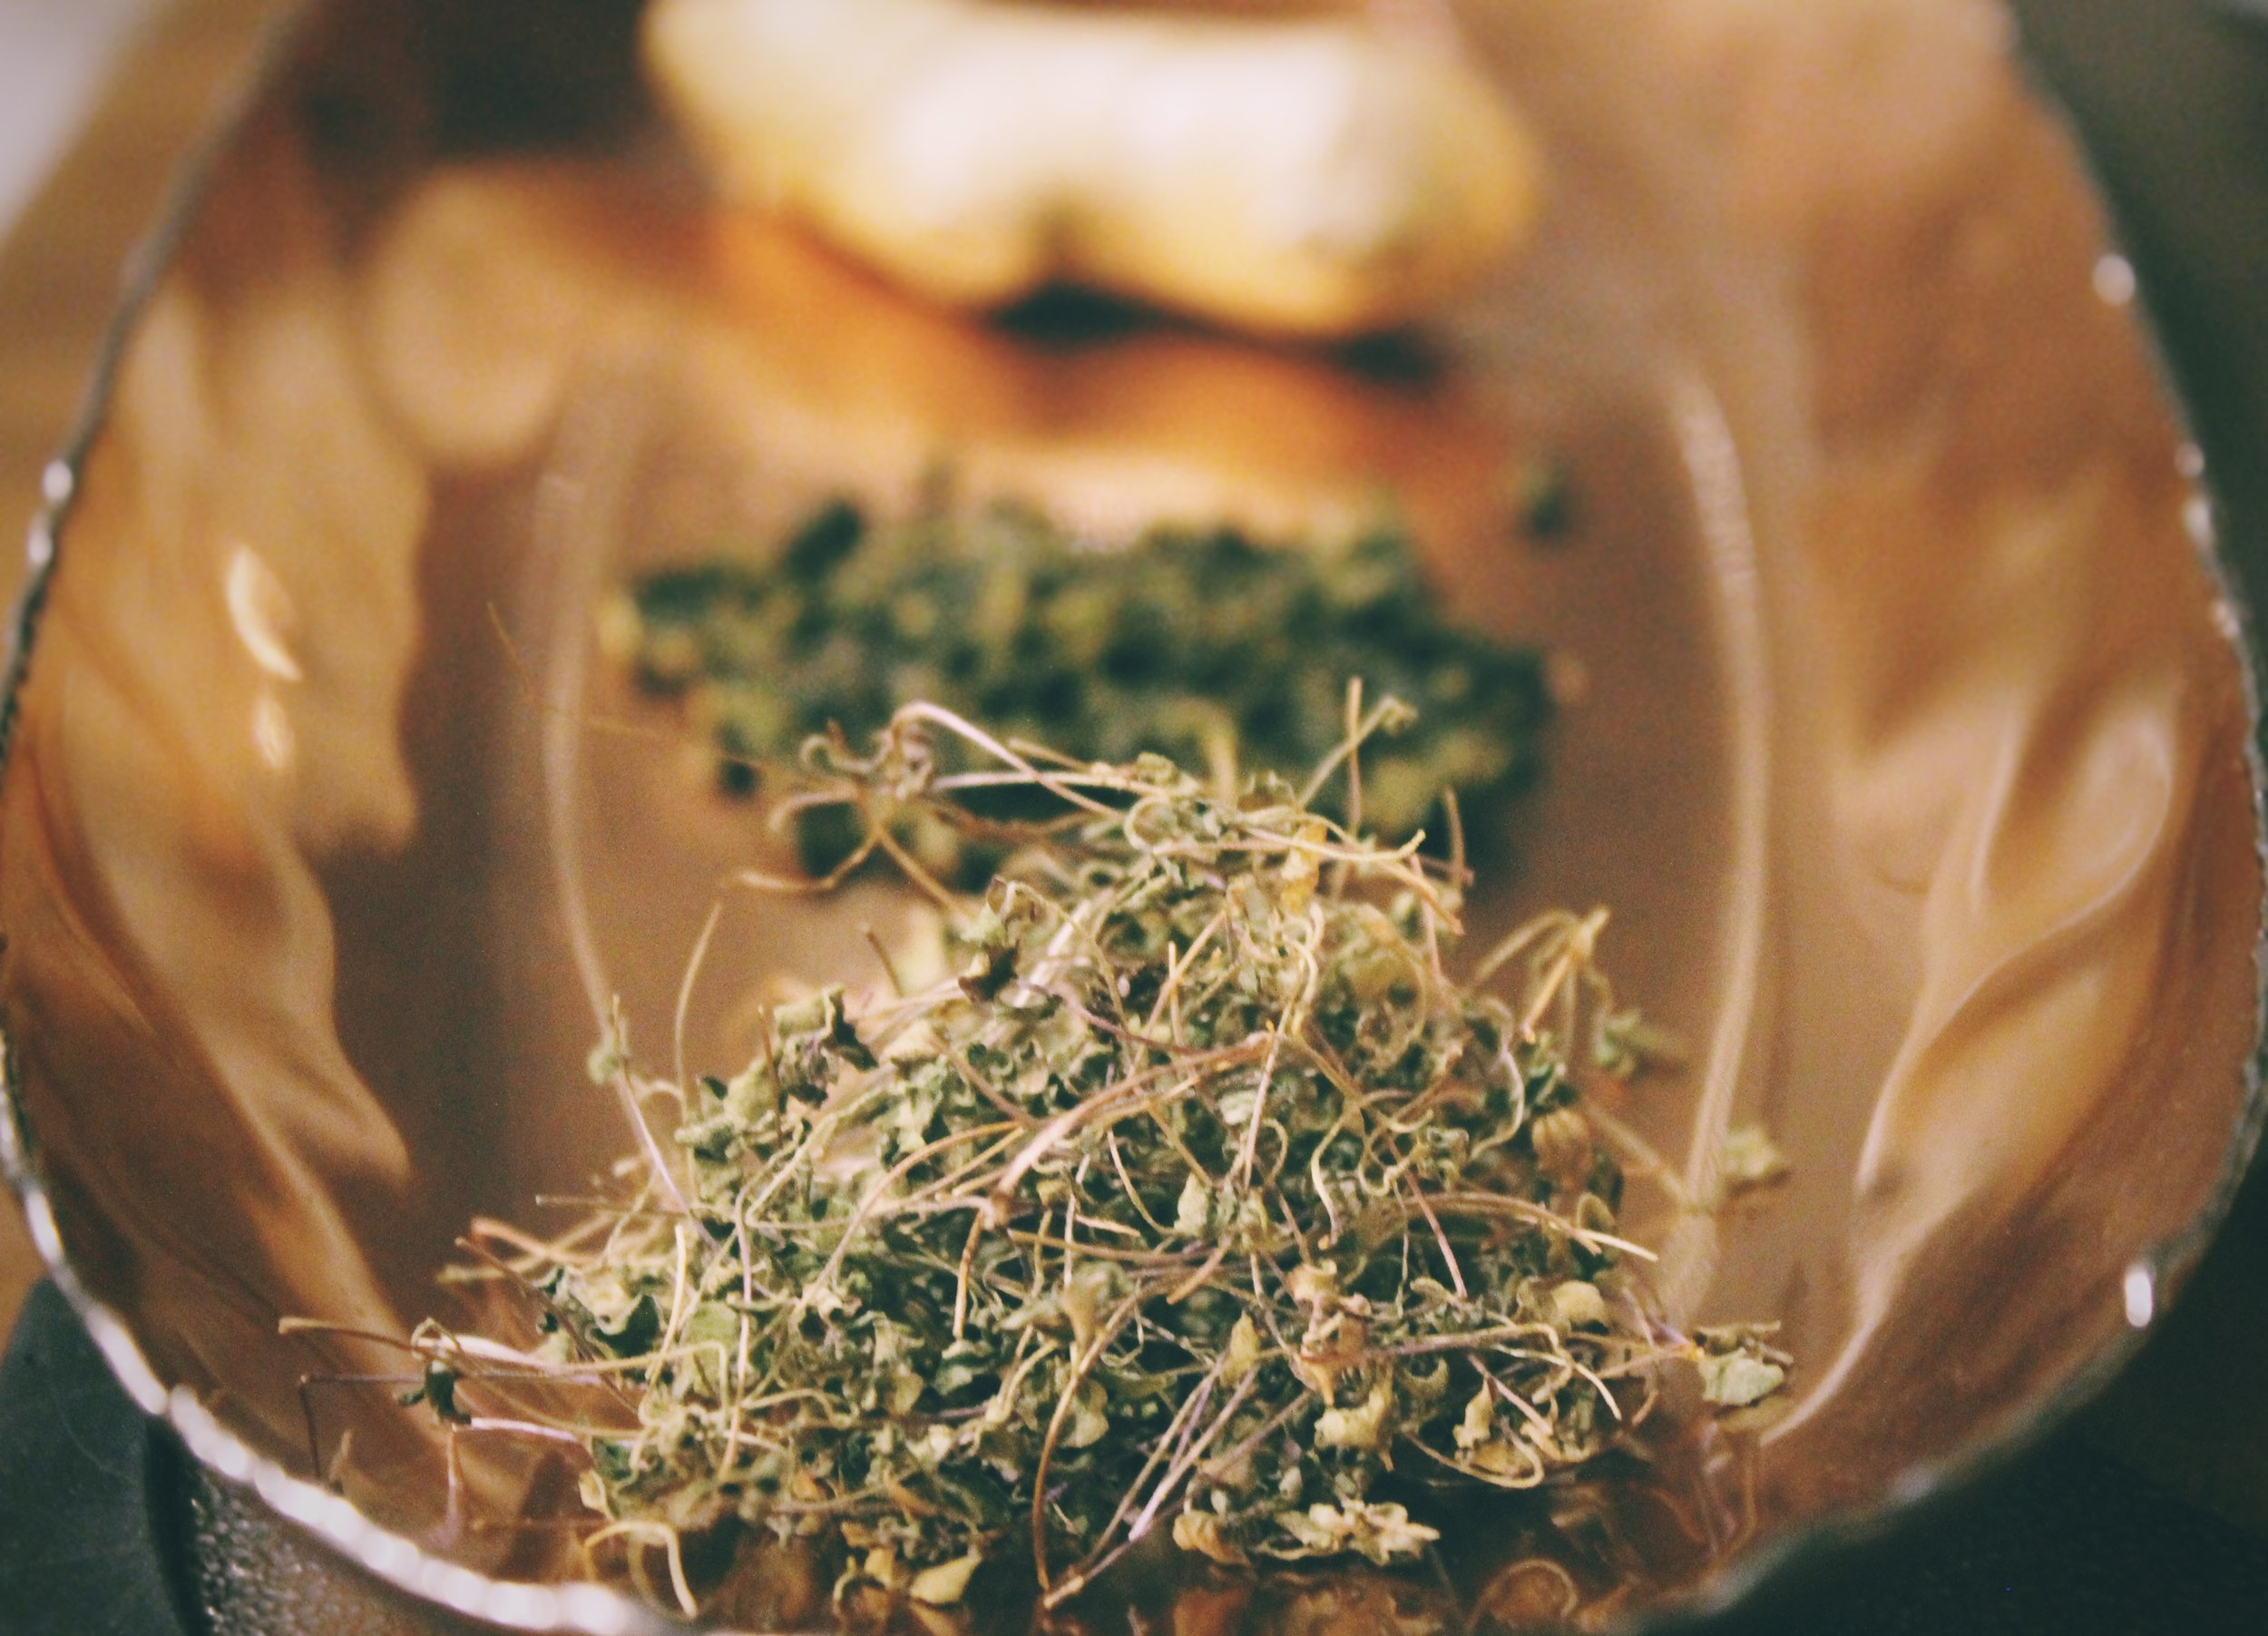 Harvest dried basil microgreens and shred with hands or chop in a food processor. Set aside.